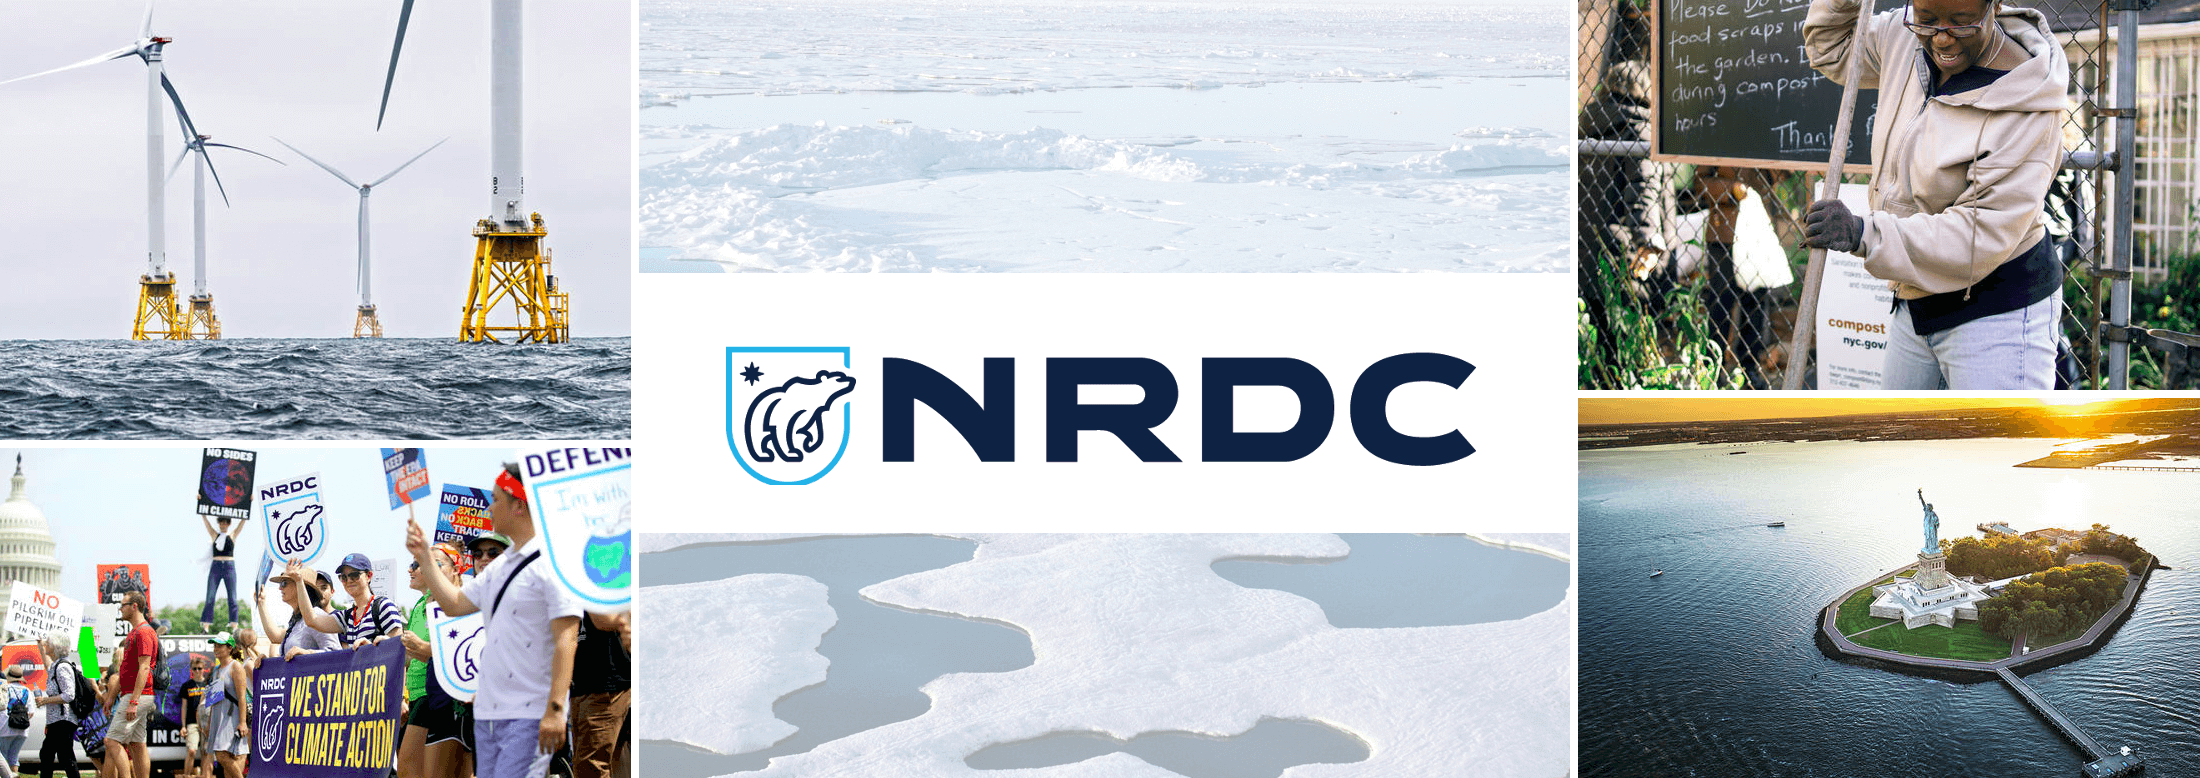 NRDC in the News Weekly Highlights: March 7, 2016